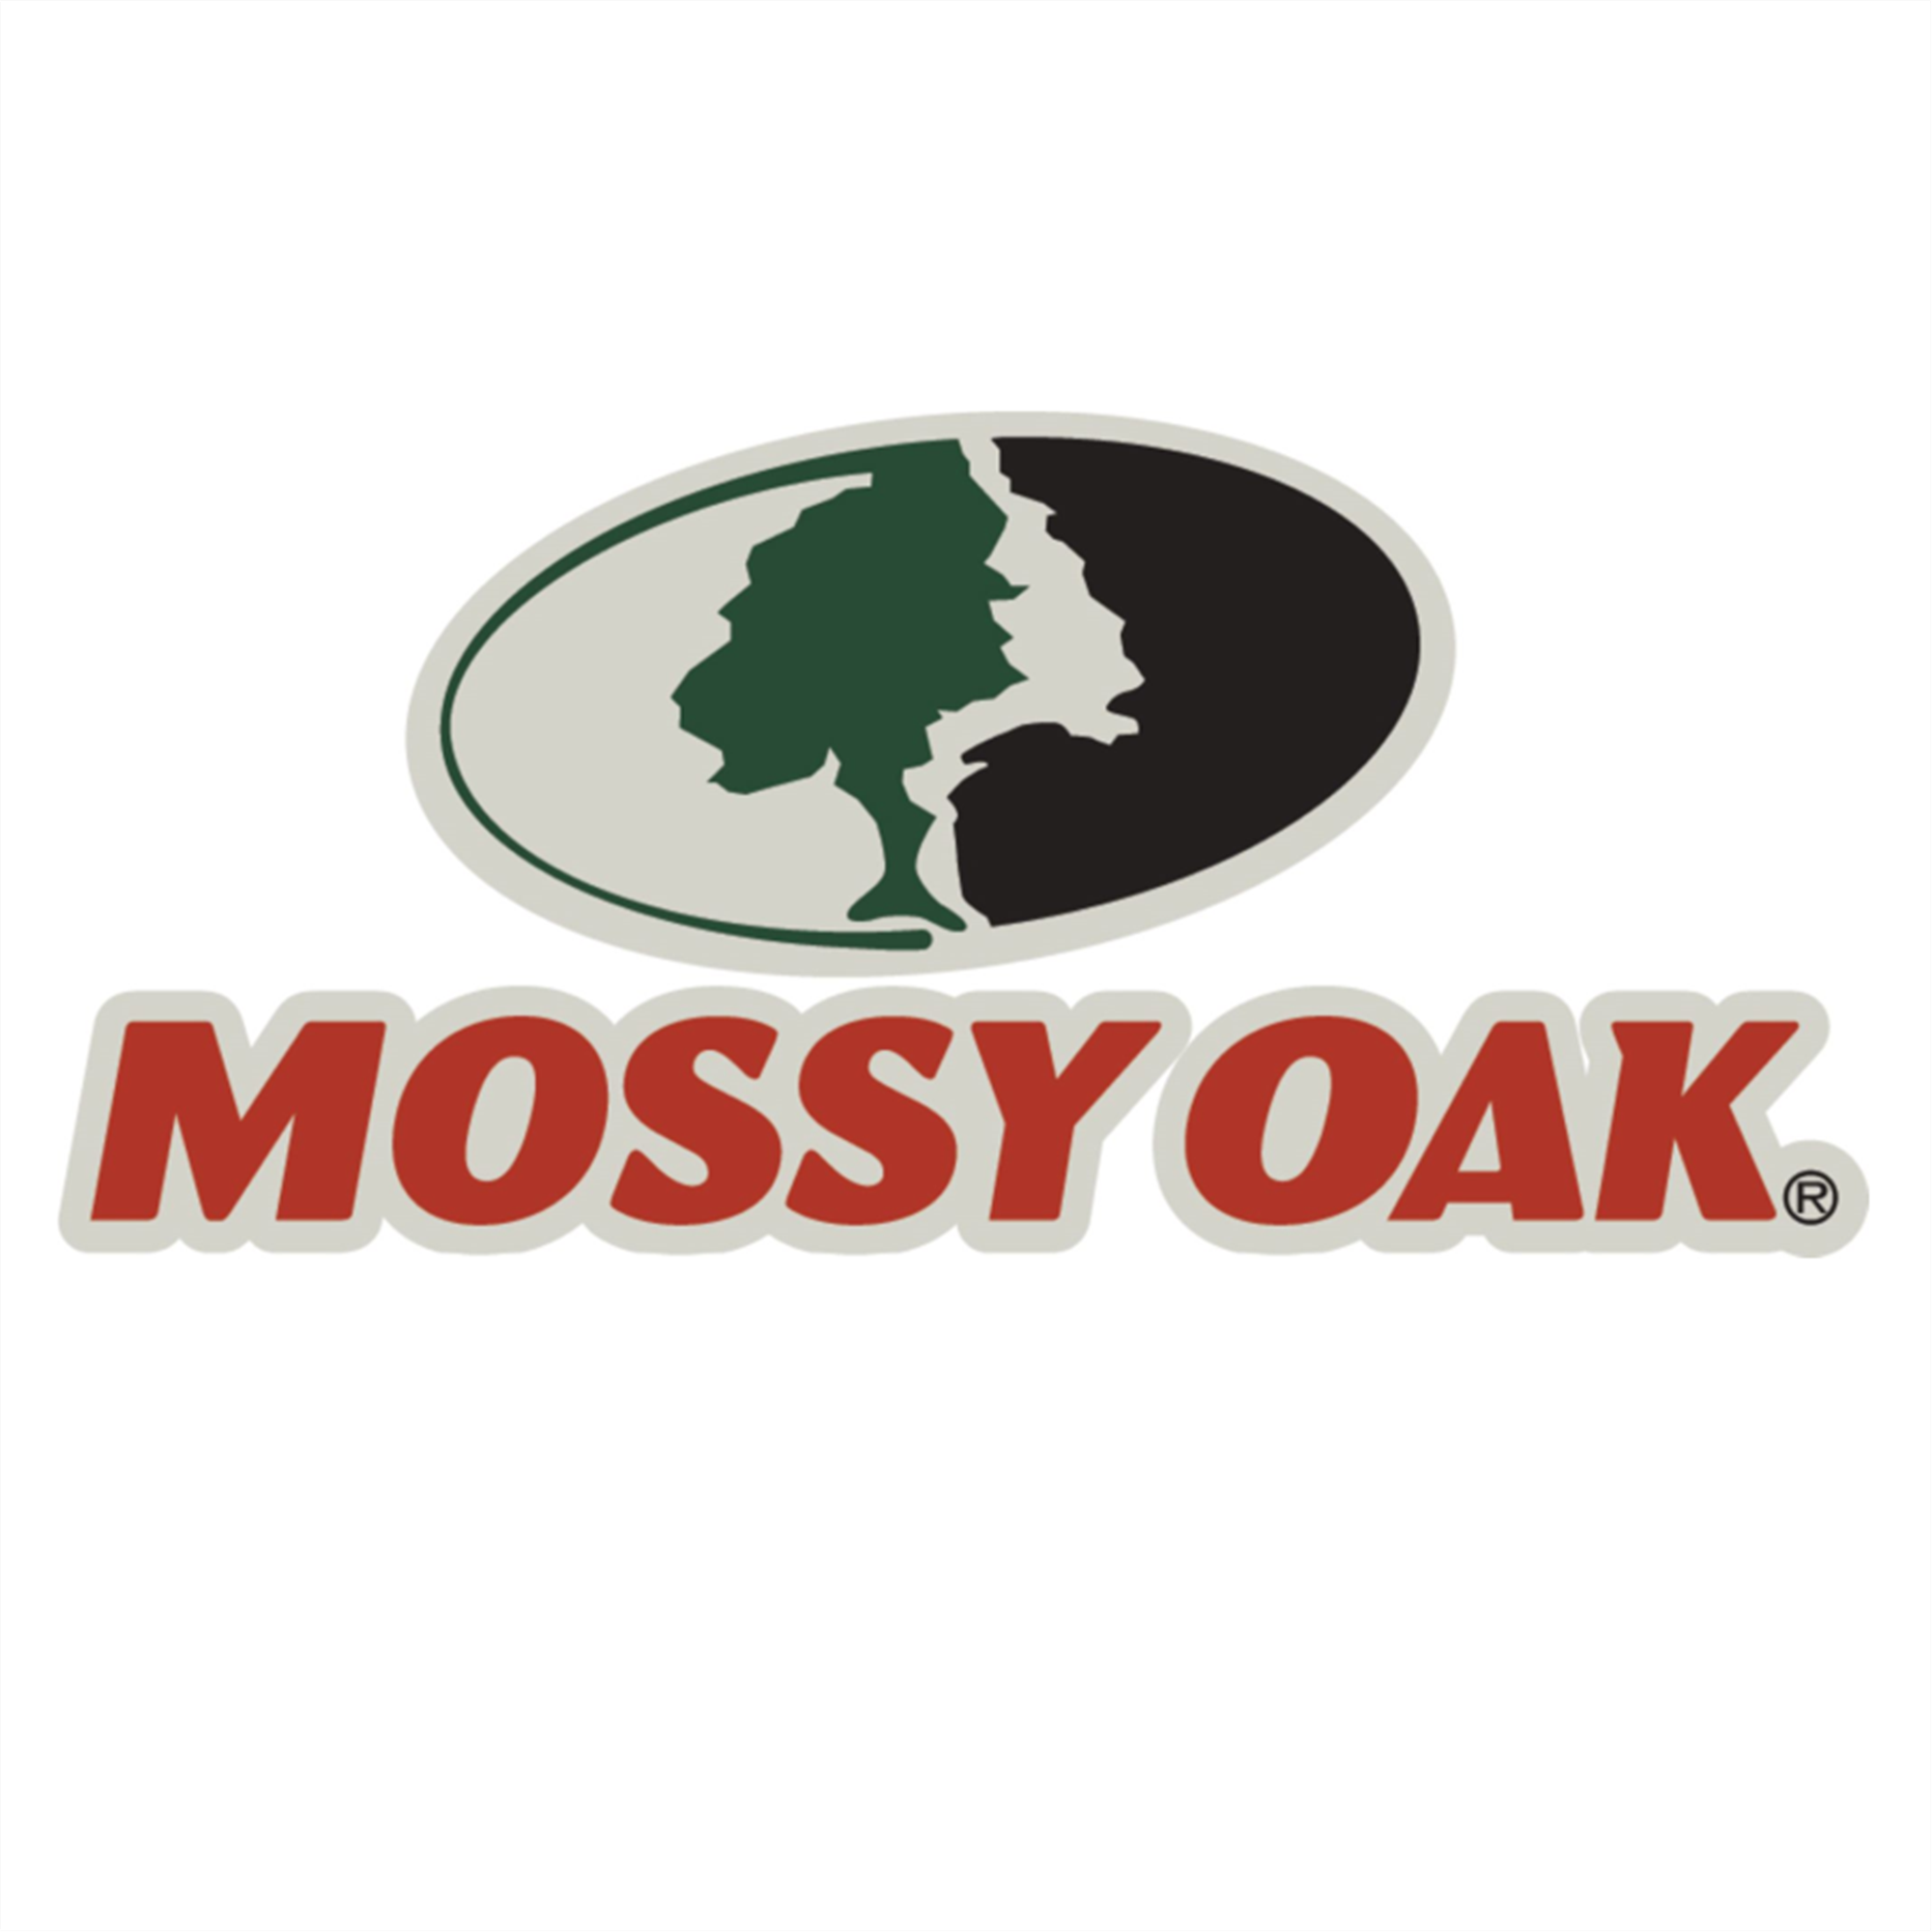 2 Pallets of Boys' Mossy Oak Long- & Short-Sleeve Mountain Country Camo T-Shirts, 1 Est. Ext. Retail $15,306, Charleston, SC